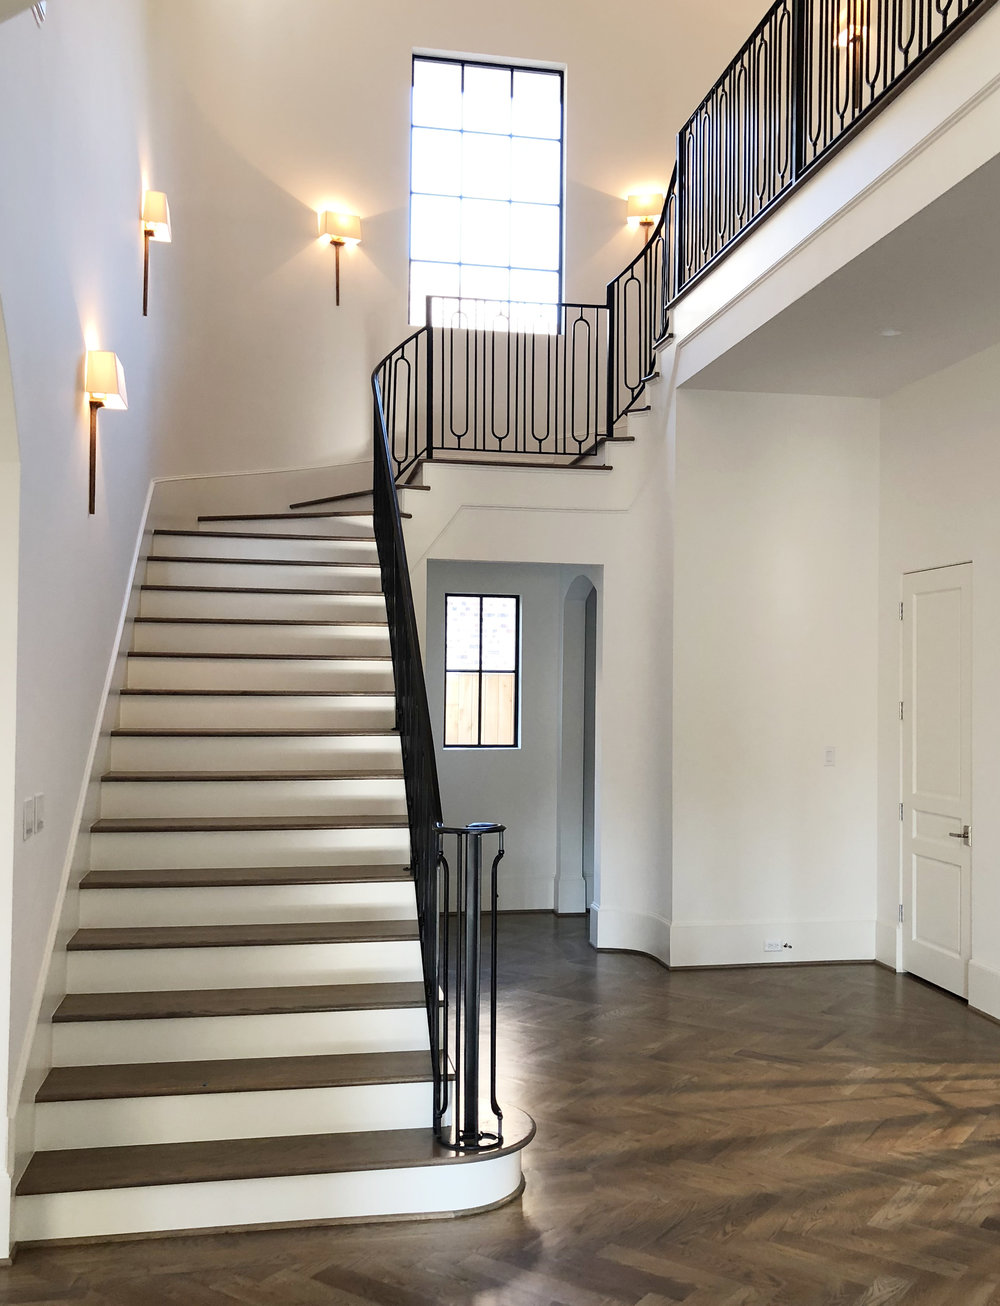 Stairwell with iron railing and herringbone wood floors in Houston's River Oaks neighborhood designed by Berlin based interior designer Jamie House, built by CM Batts Developers.